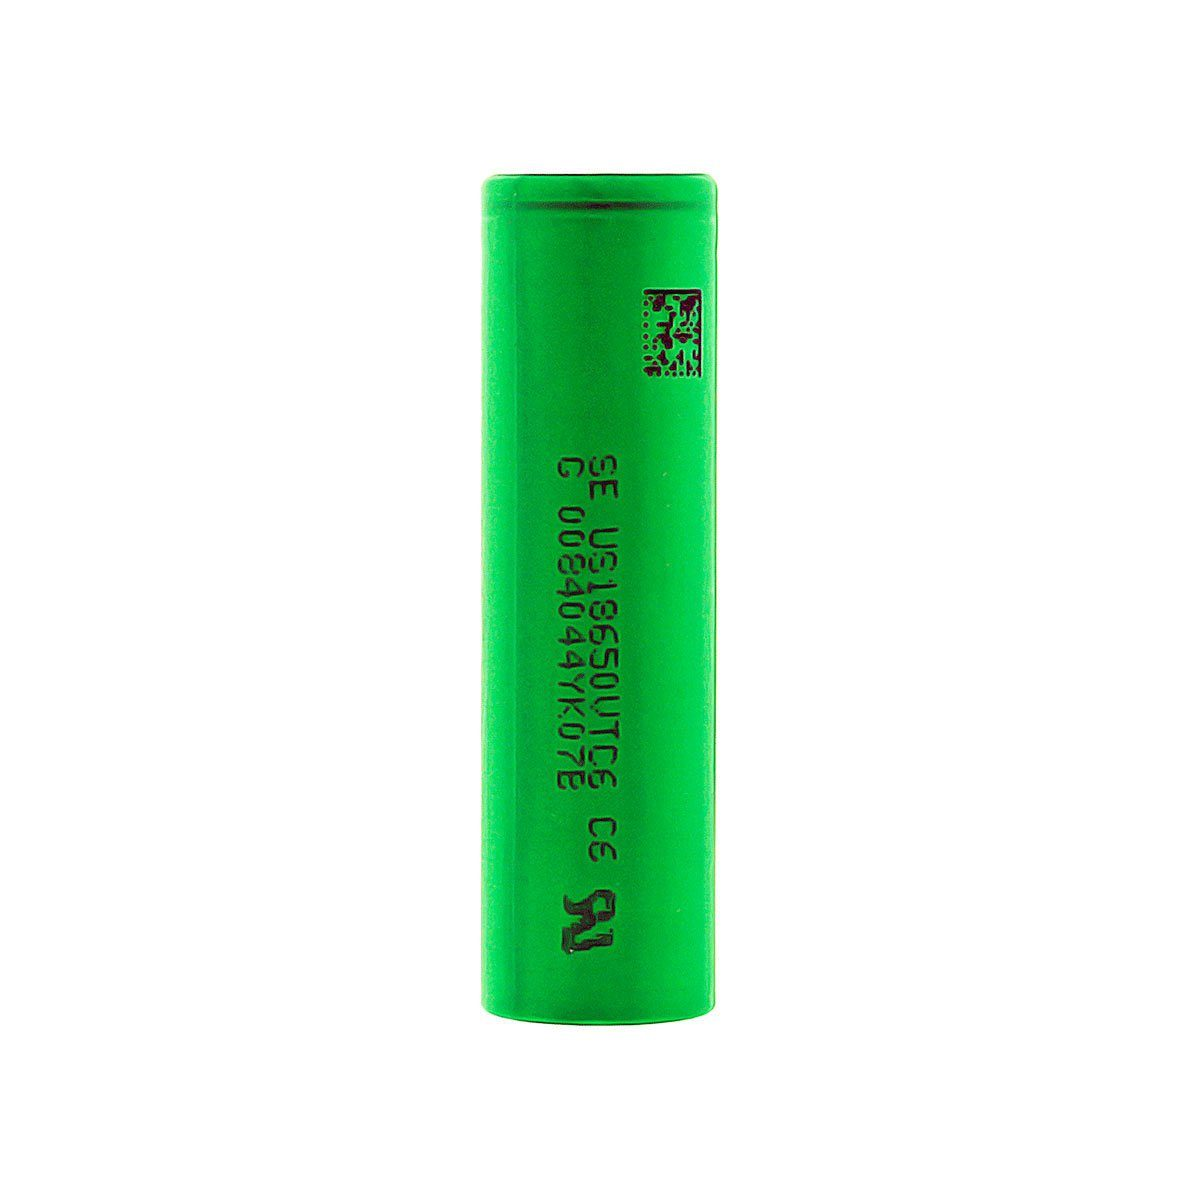 Batteries - Sony VTC6 18650 3000 Mah Battery